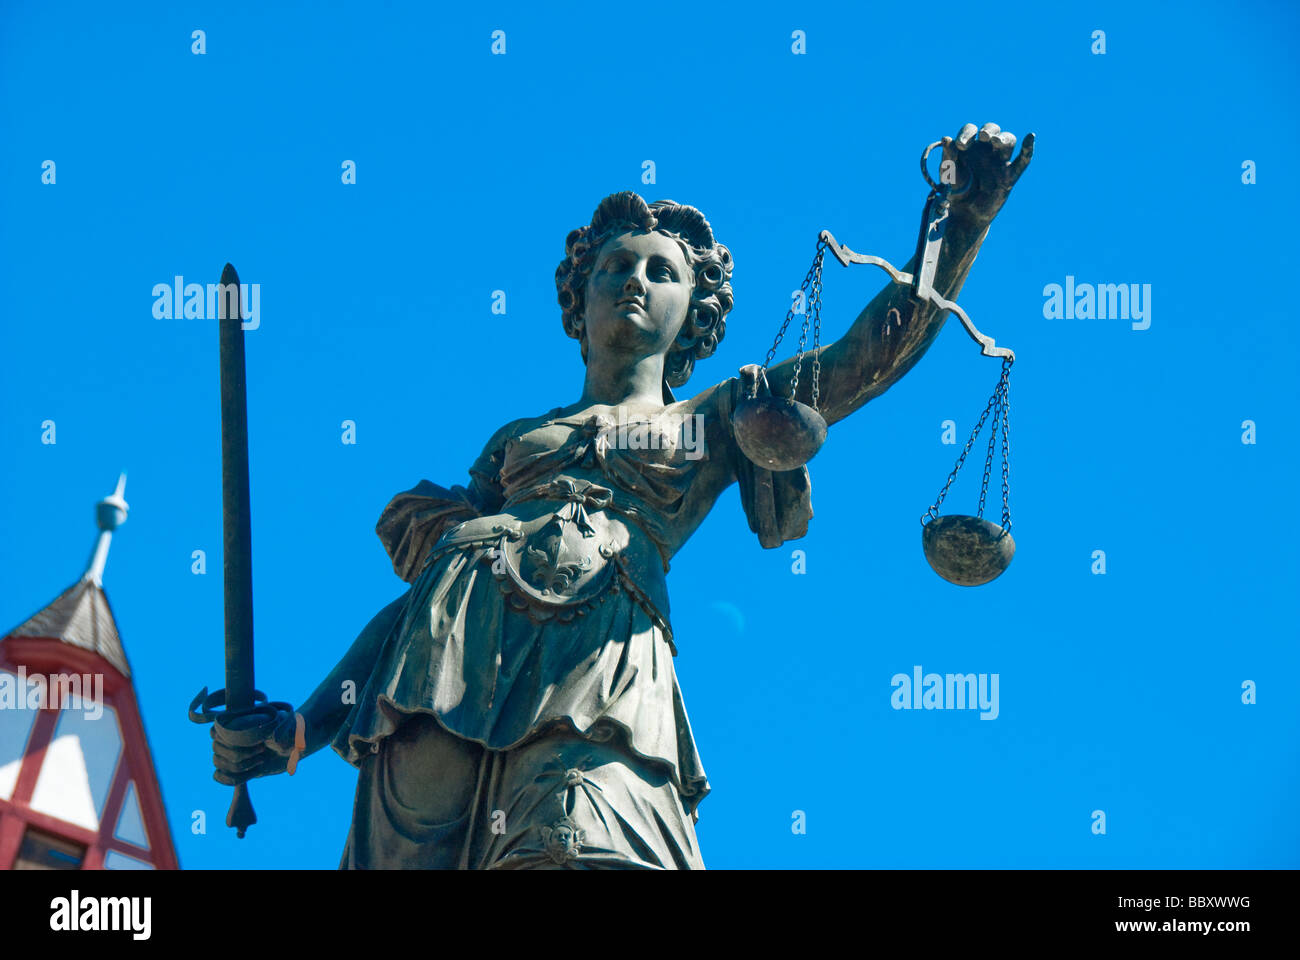 The Sculpture of the Justitia Bronze work in Frankfurt am Main Germany - Stock Image